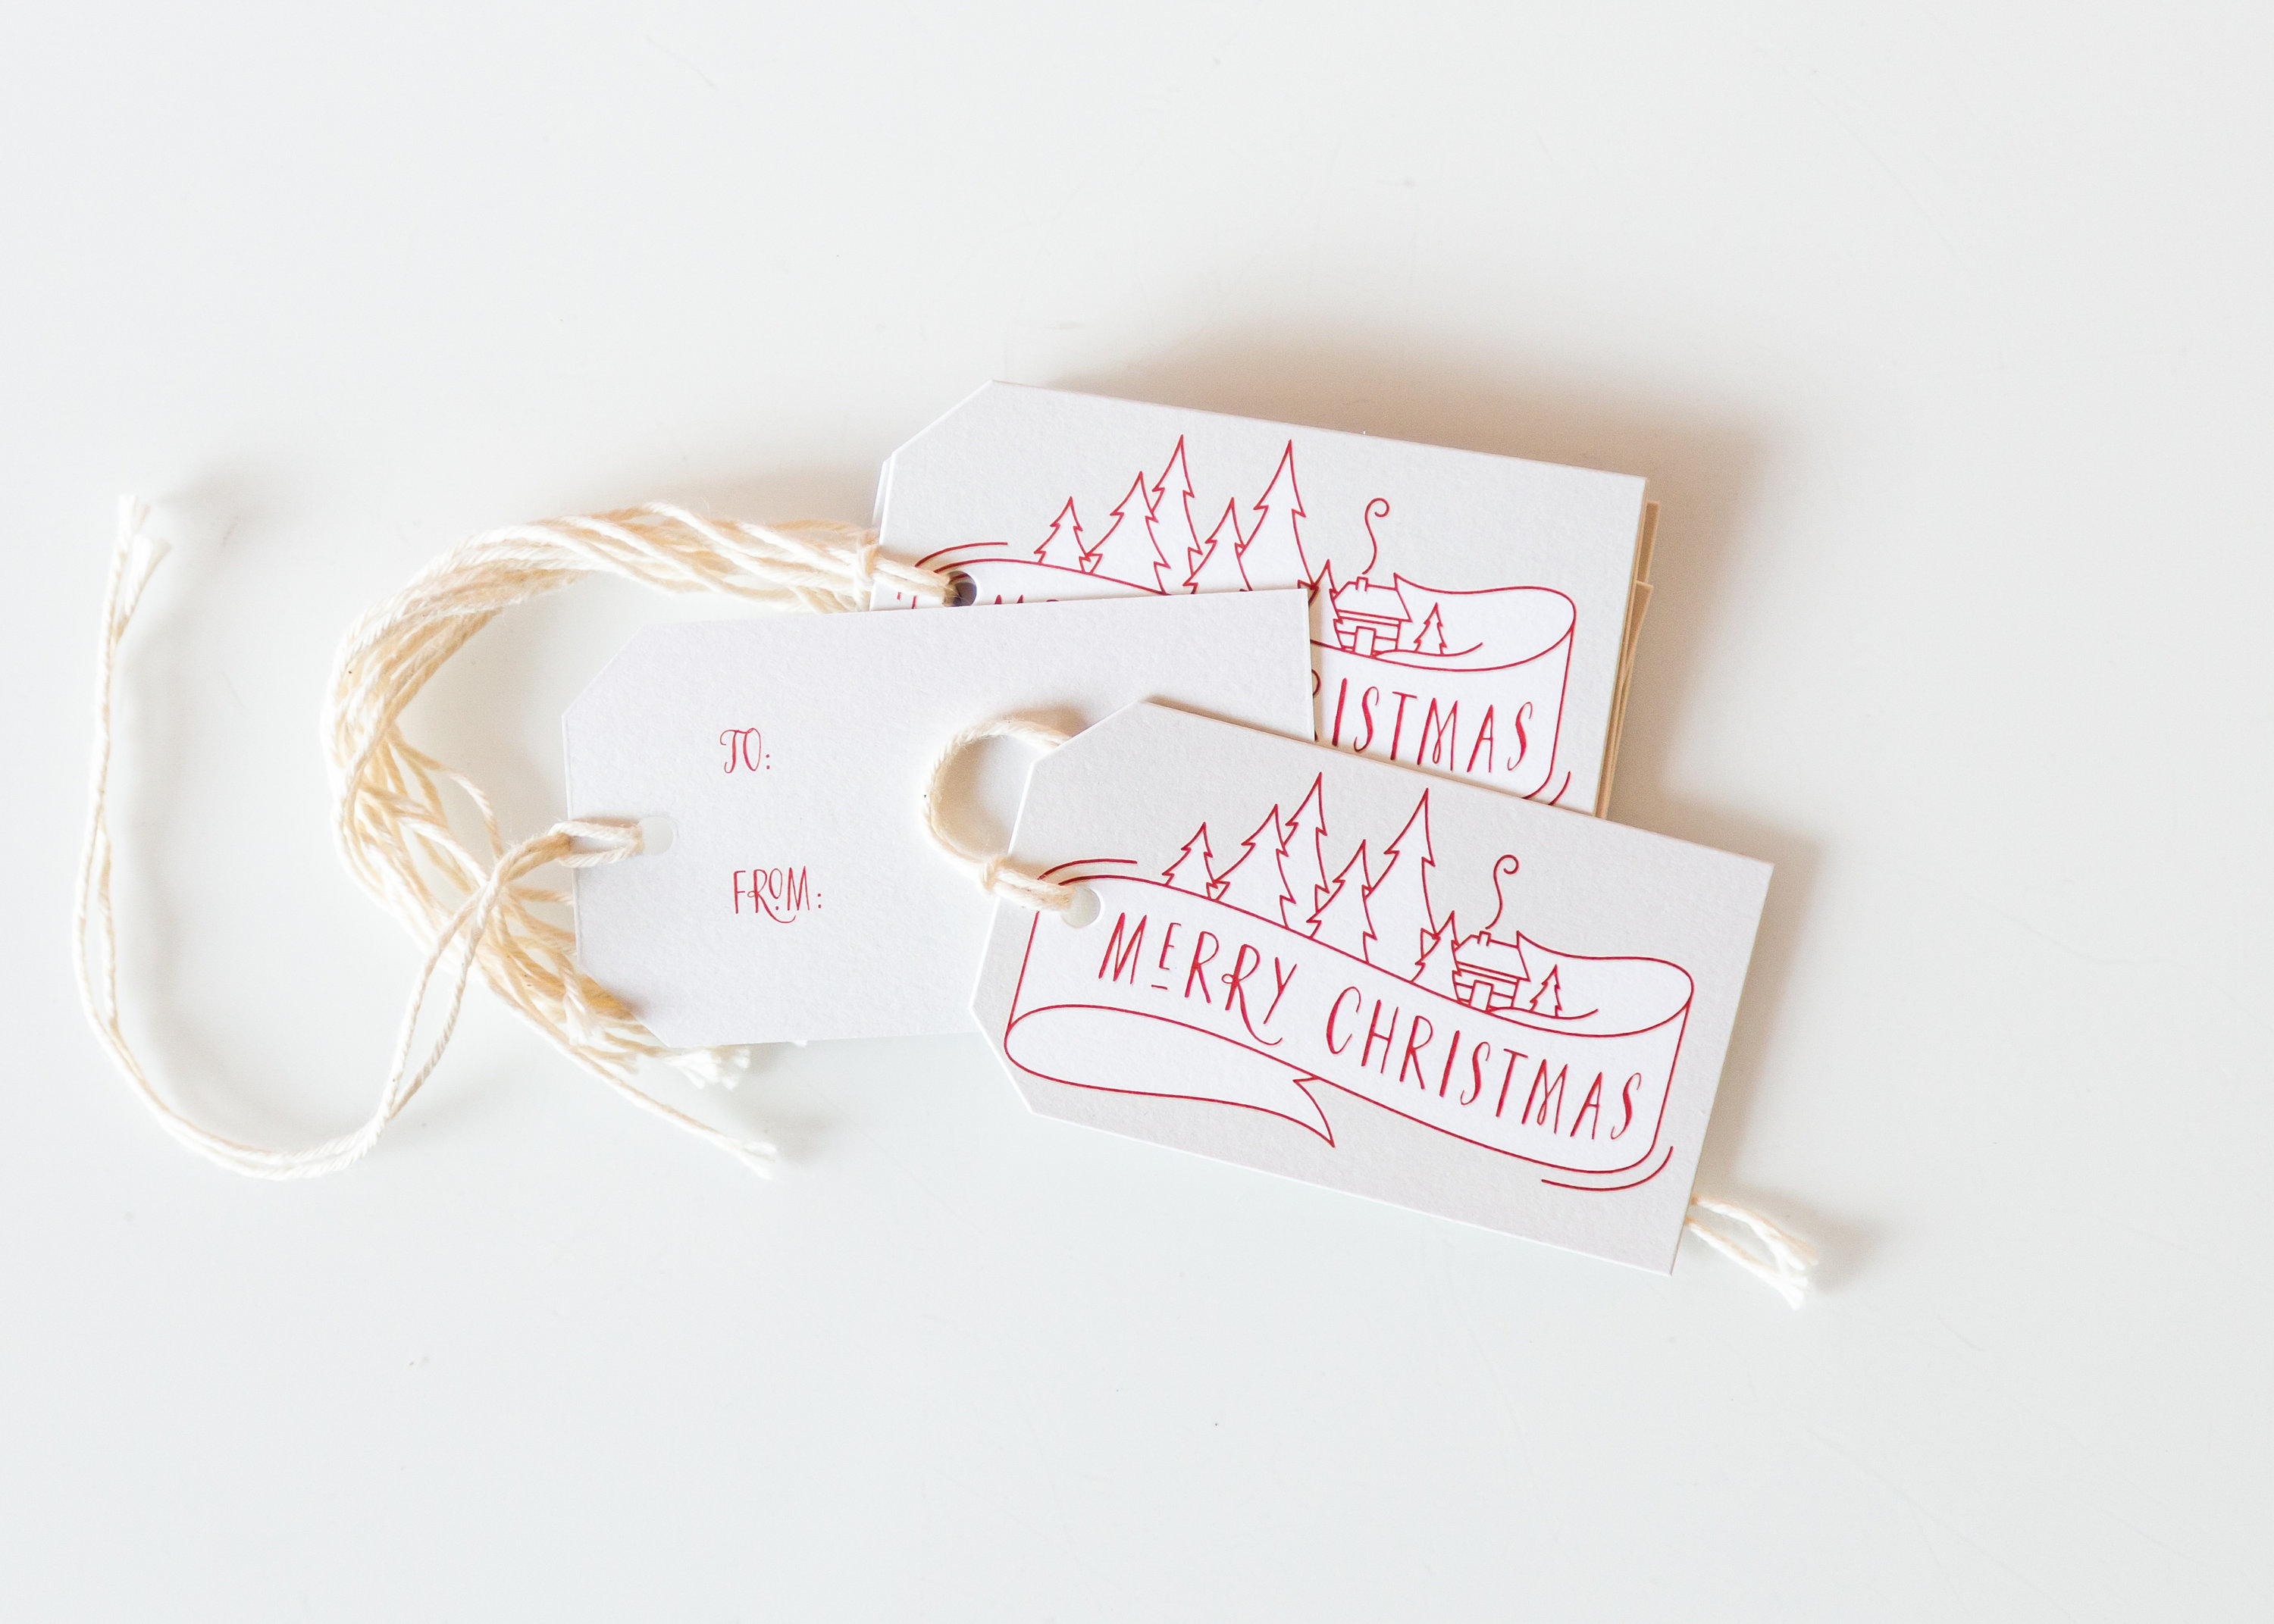 merry christmas banner tags fresh cut prints fresh cut prints